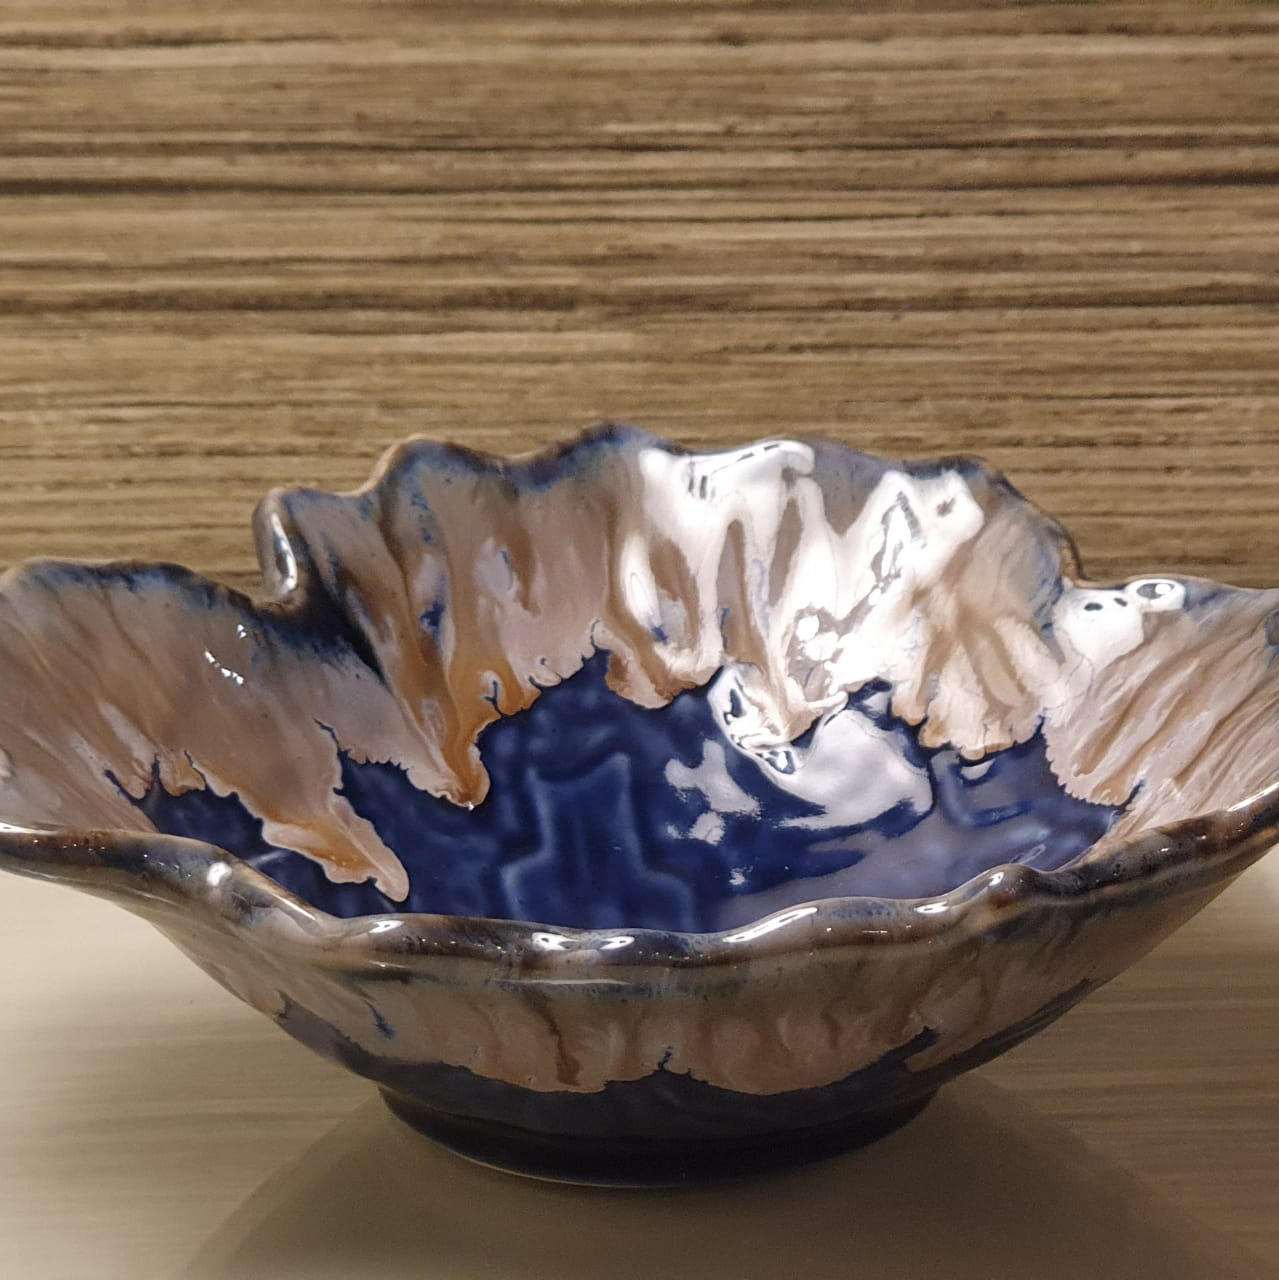 A Tiny Mistake Blue Uneven Decorative Ceramic Serving Bowl A Tiny Mistake Online Store